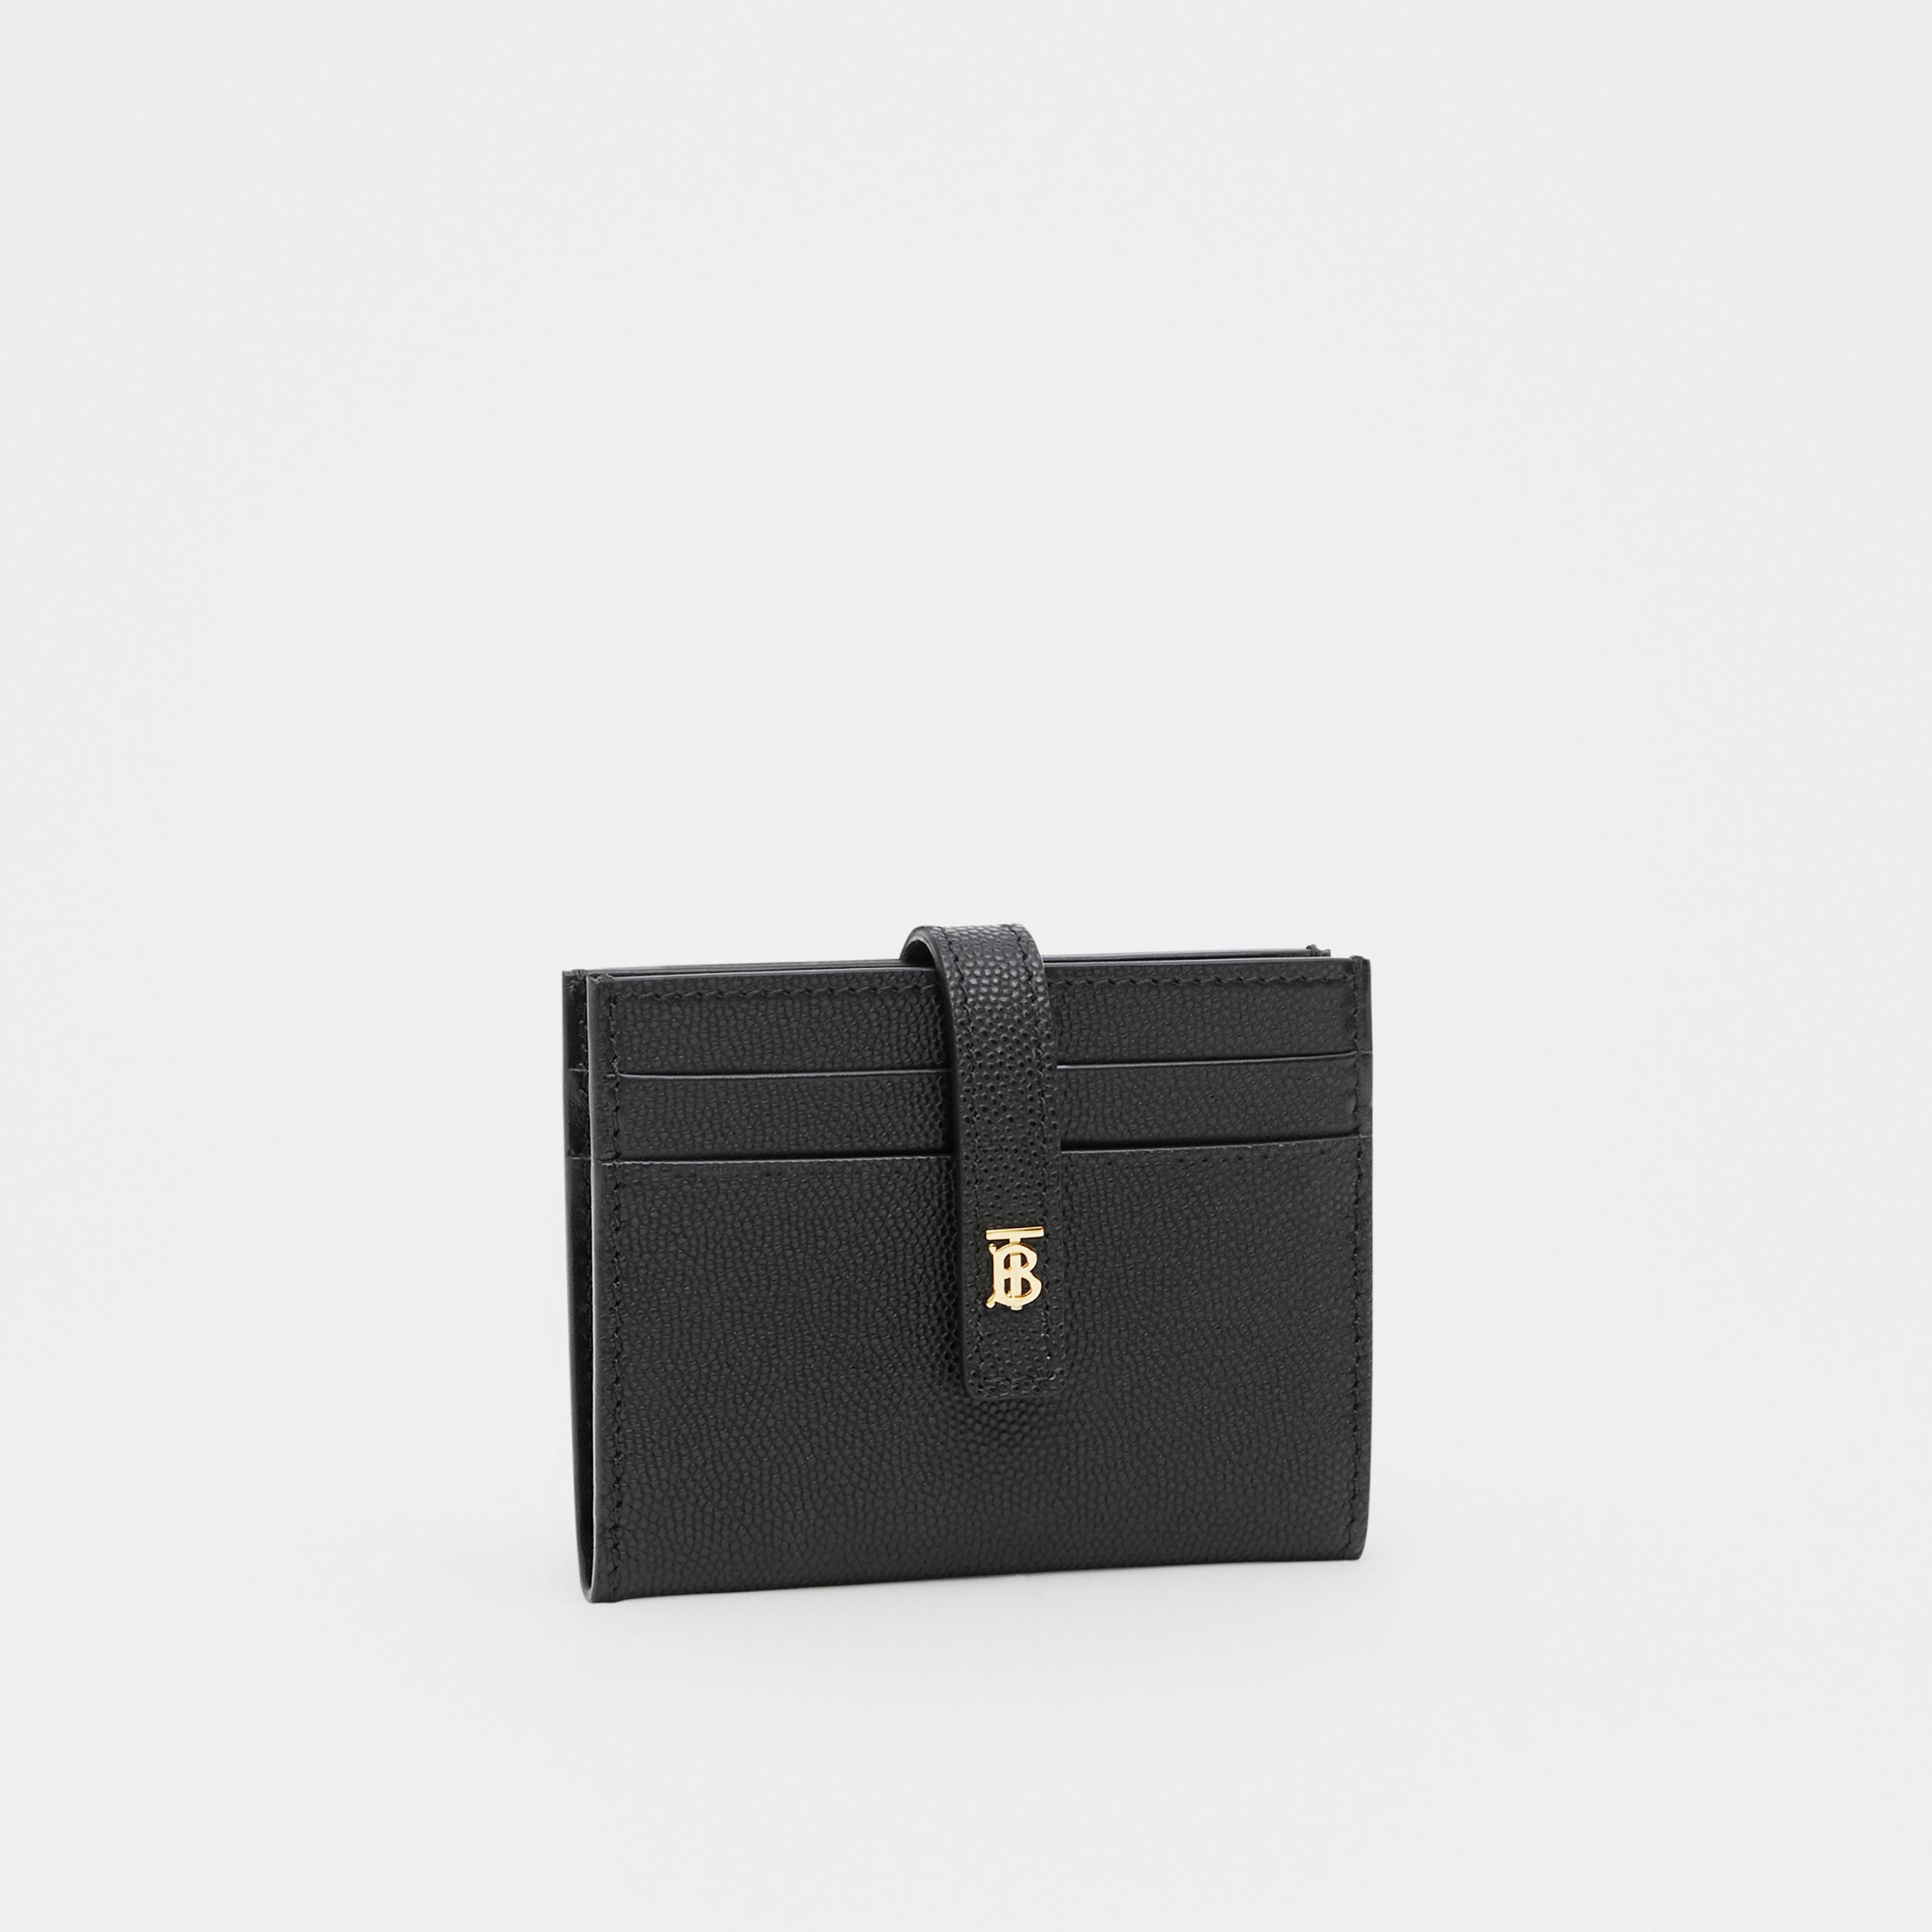 Monogram Motif Leather Folding Card Case in Black - Women | Burberry - 3